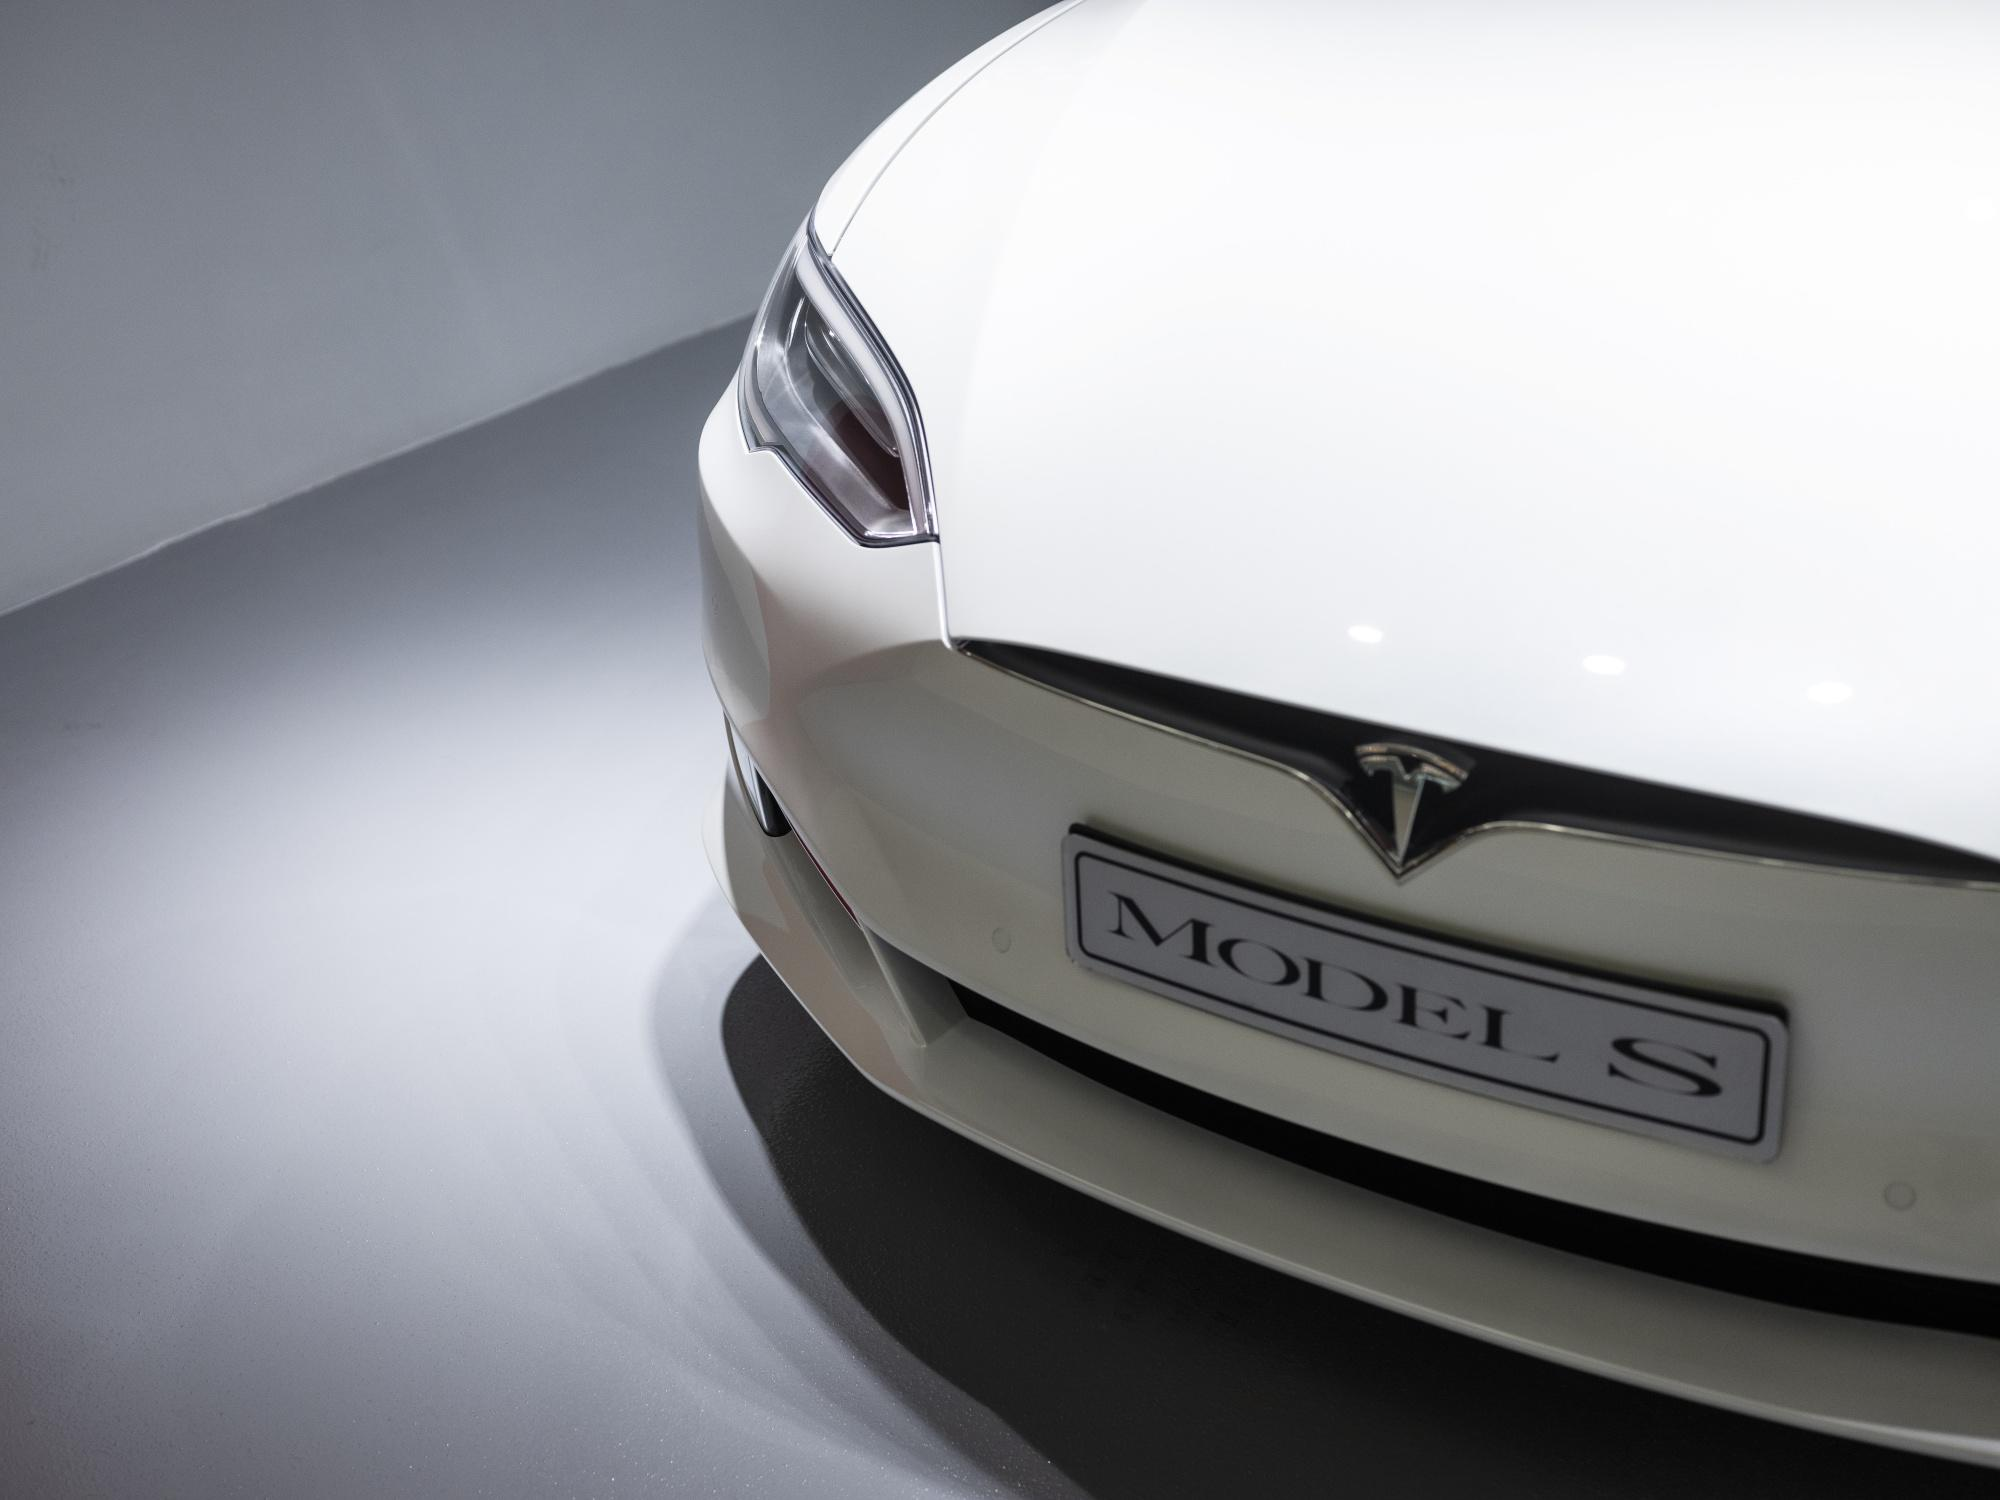 Analyst Calls Tesla's Quarter One of the 'Top Debacles' in 20 Years of Tech